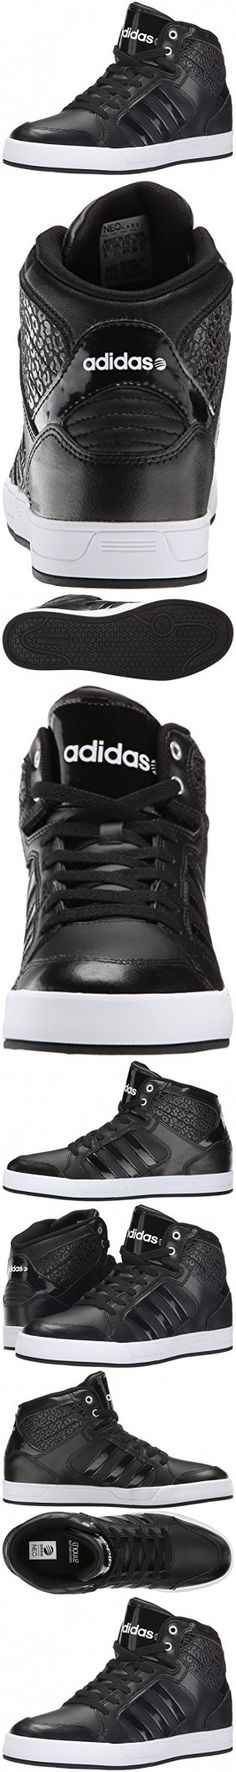 new arrivals 45396 118d1 Adidas NEO Women s Bbadidas Performance Raleigh Mid W Basketball Fashion  Sneaker,Black Black White,10 M US